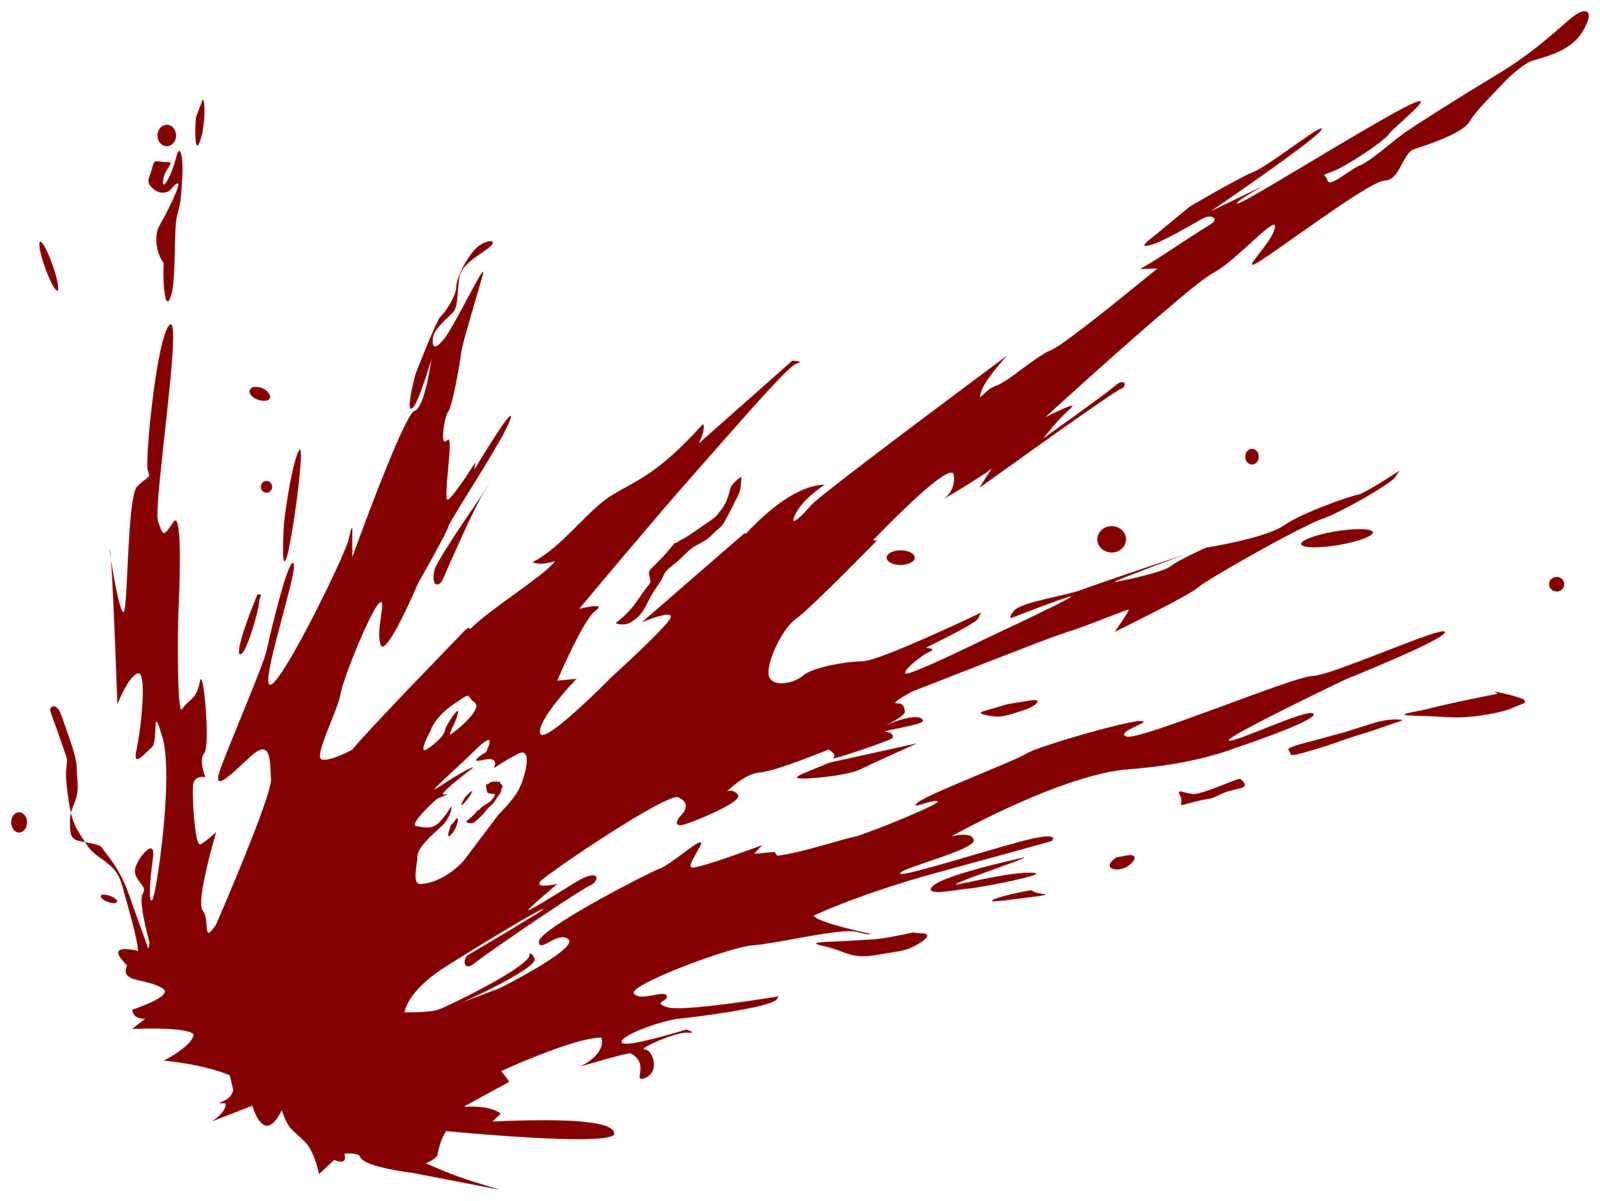 hight resolution of blood splatter png picture clipart free clip art images